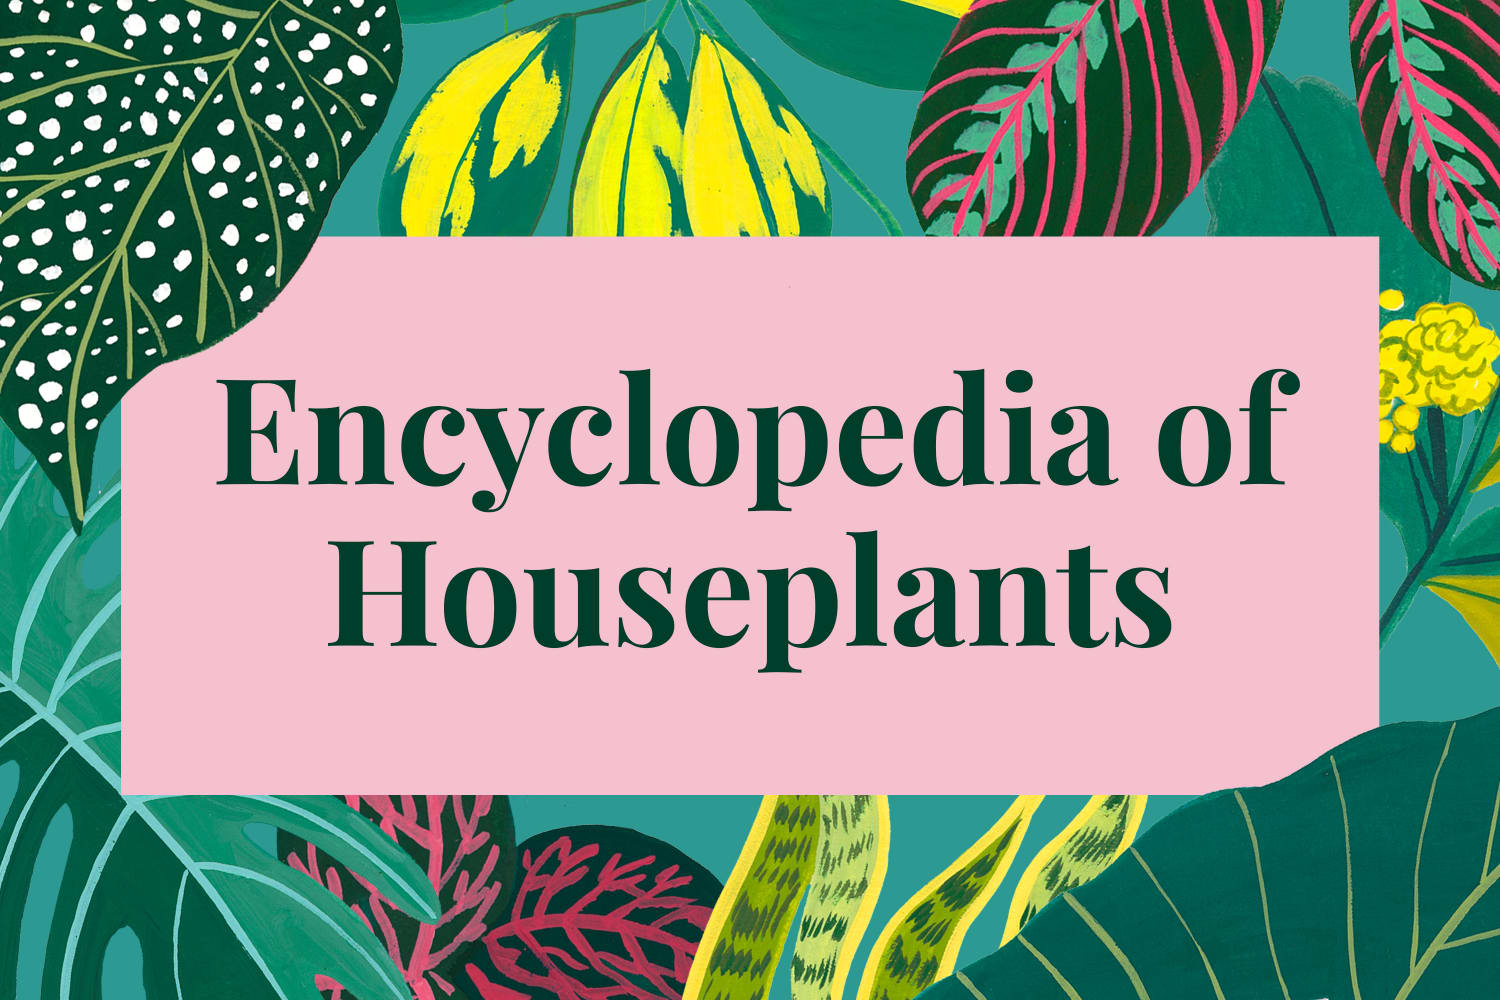 Houseplant Encyclopedia: Complete How-to Guide to 70+ Plant Types